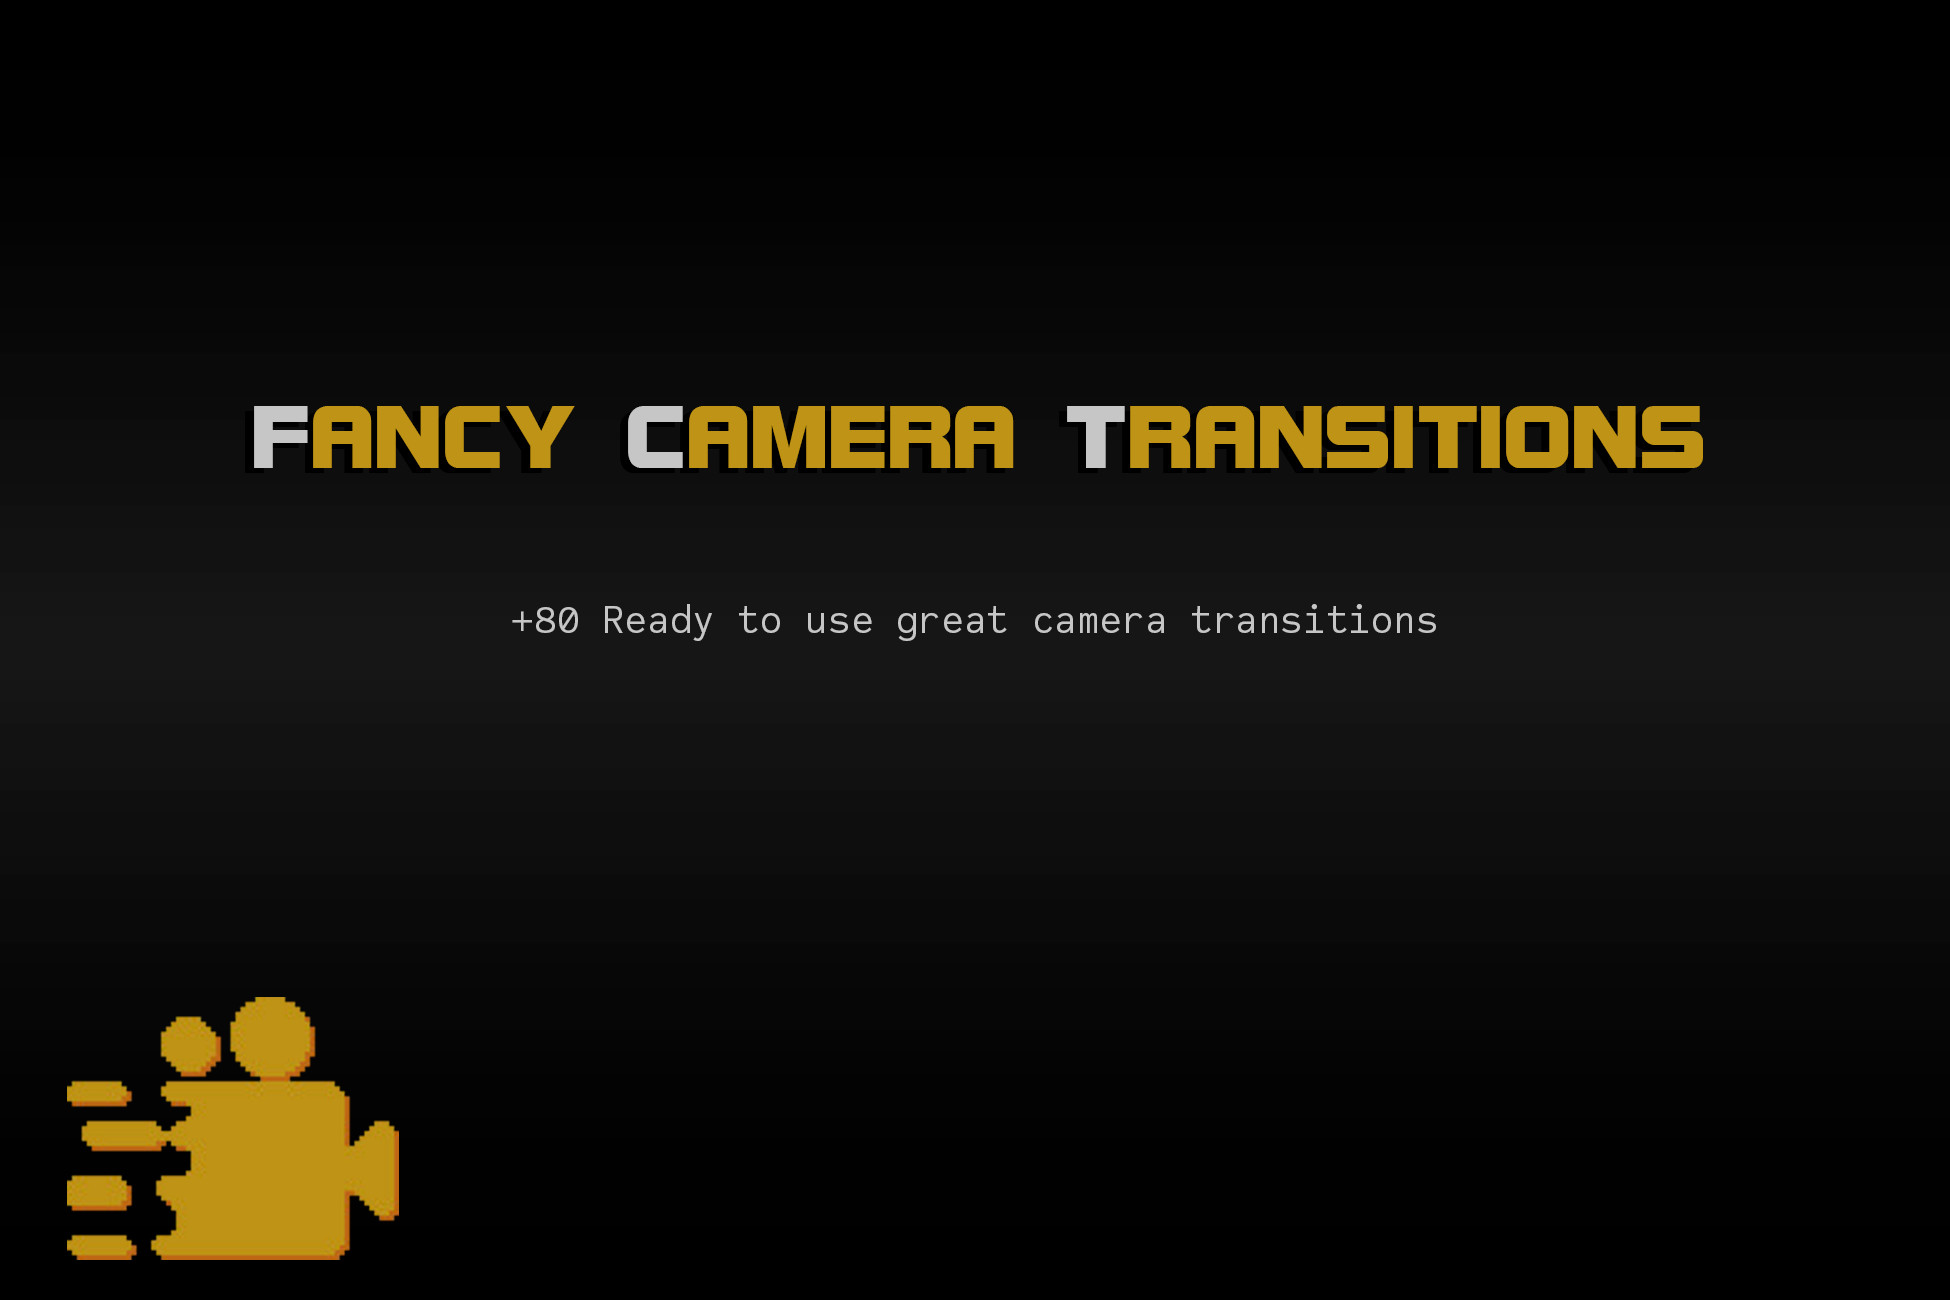 Fancy Camera Transitions